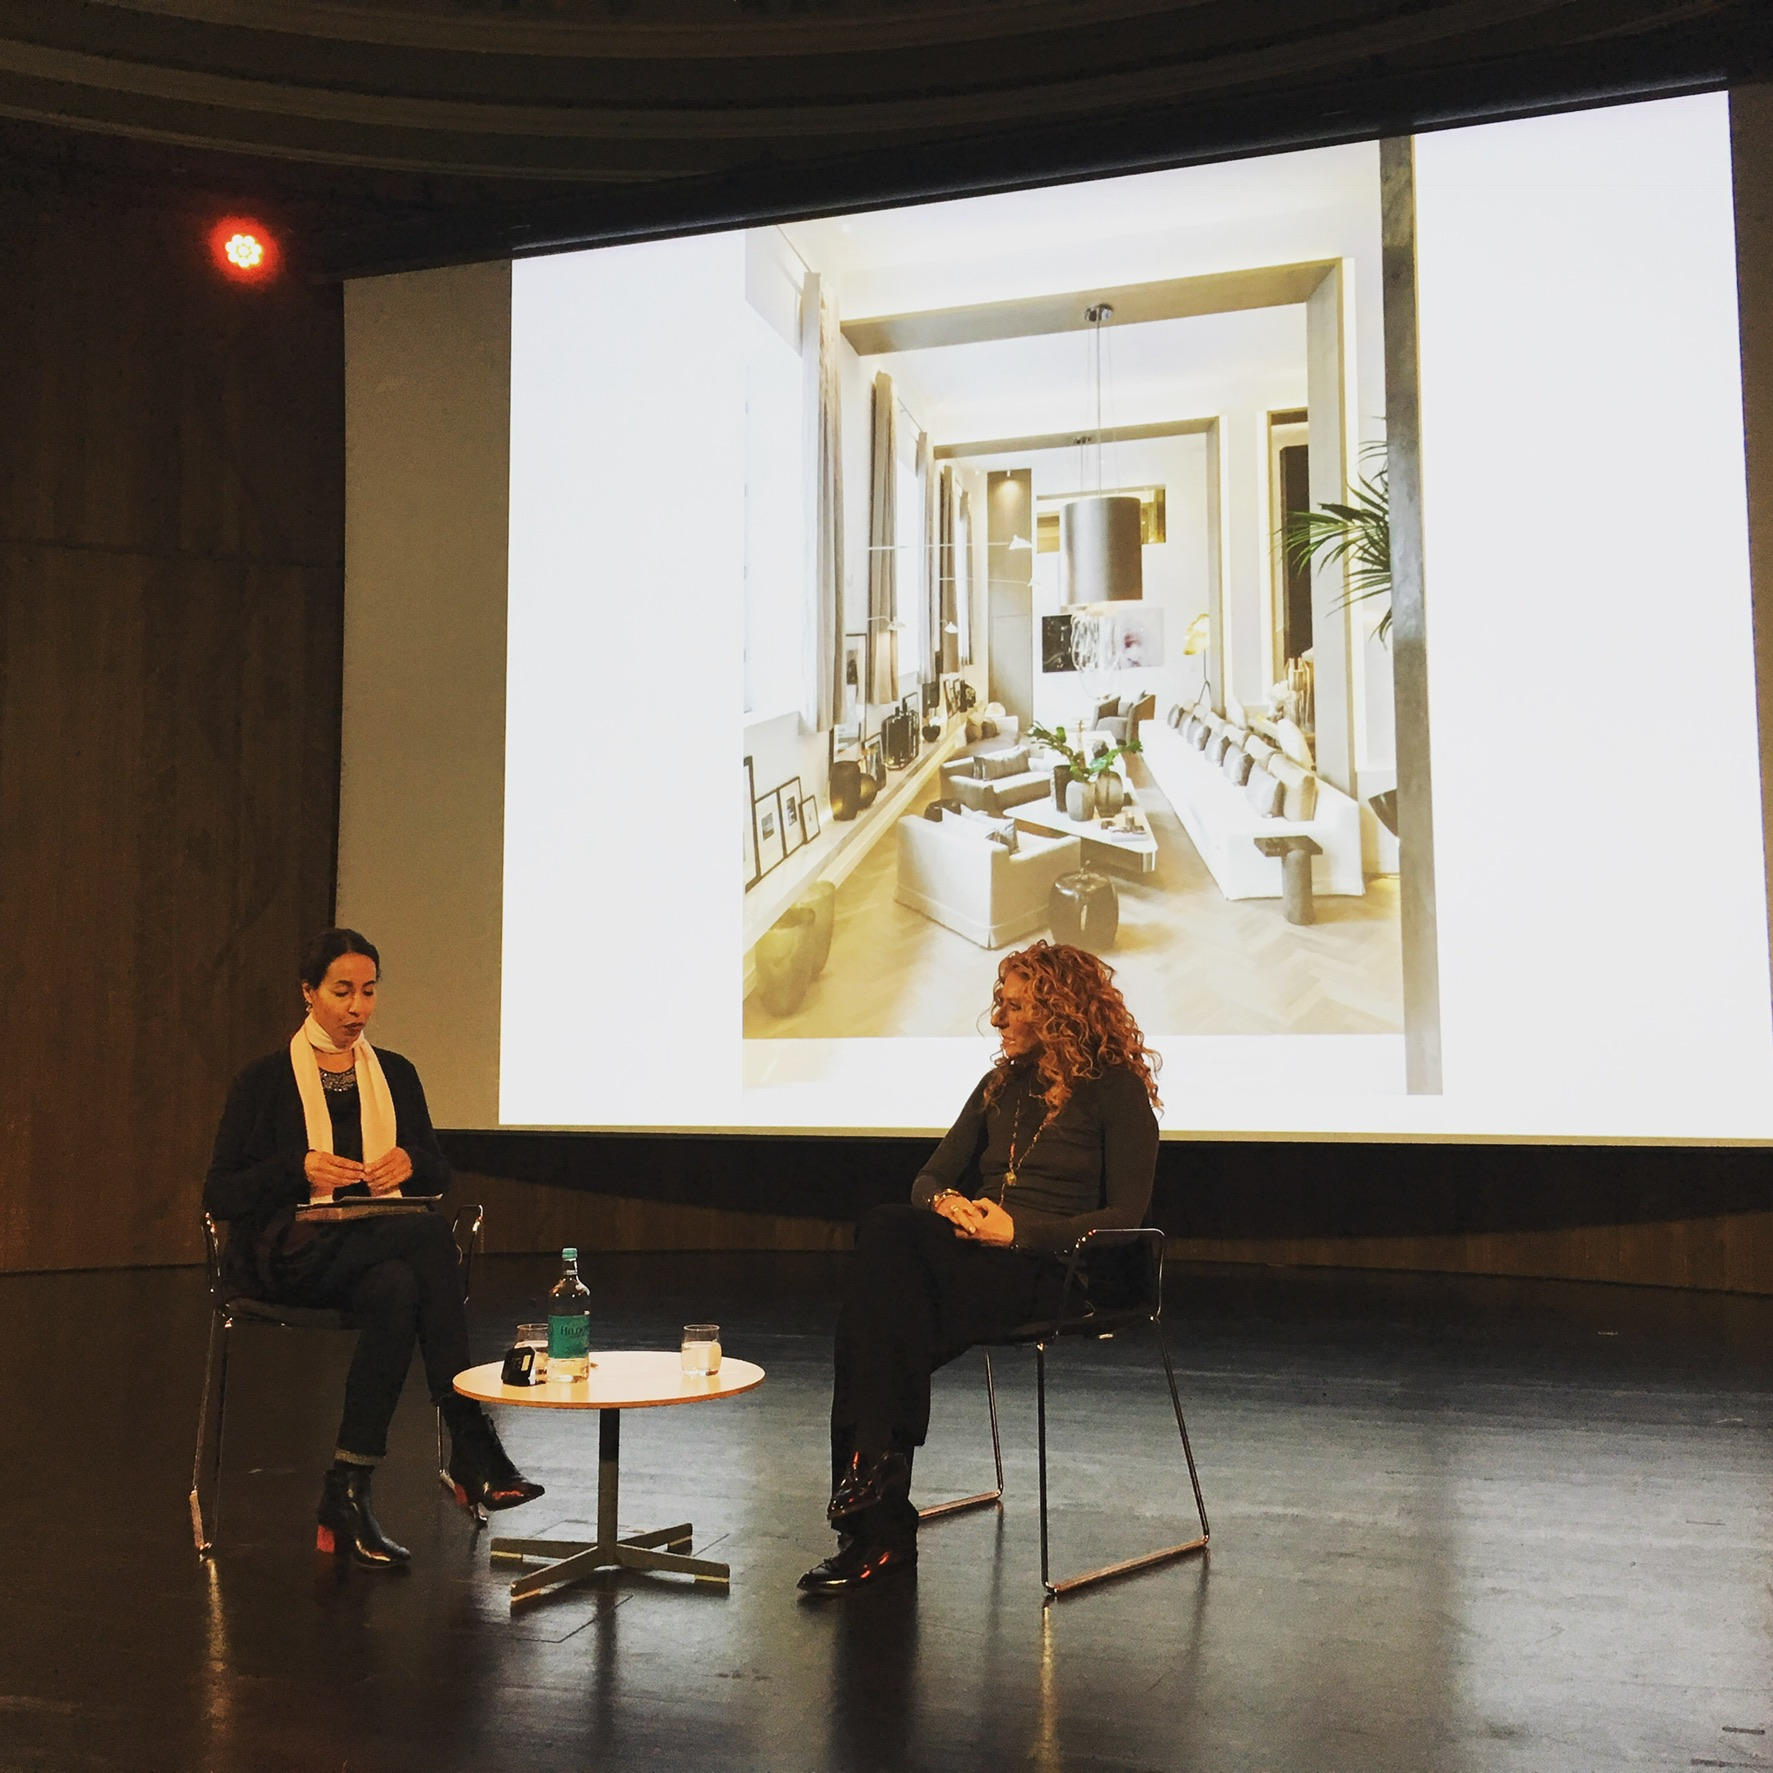 Kelly Hoppen in conversation with Michelle Ogundehin at the V&A